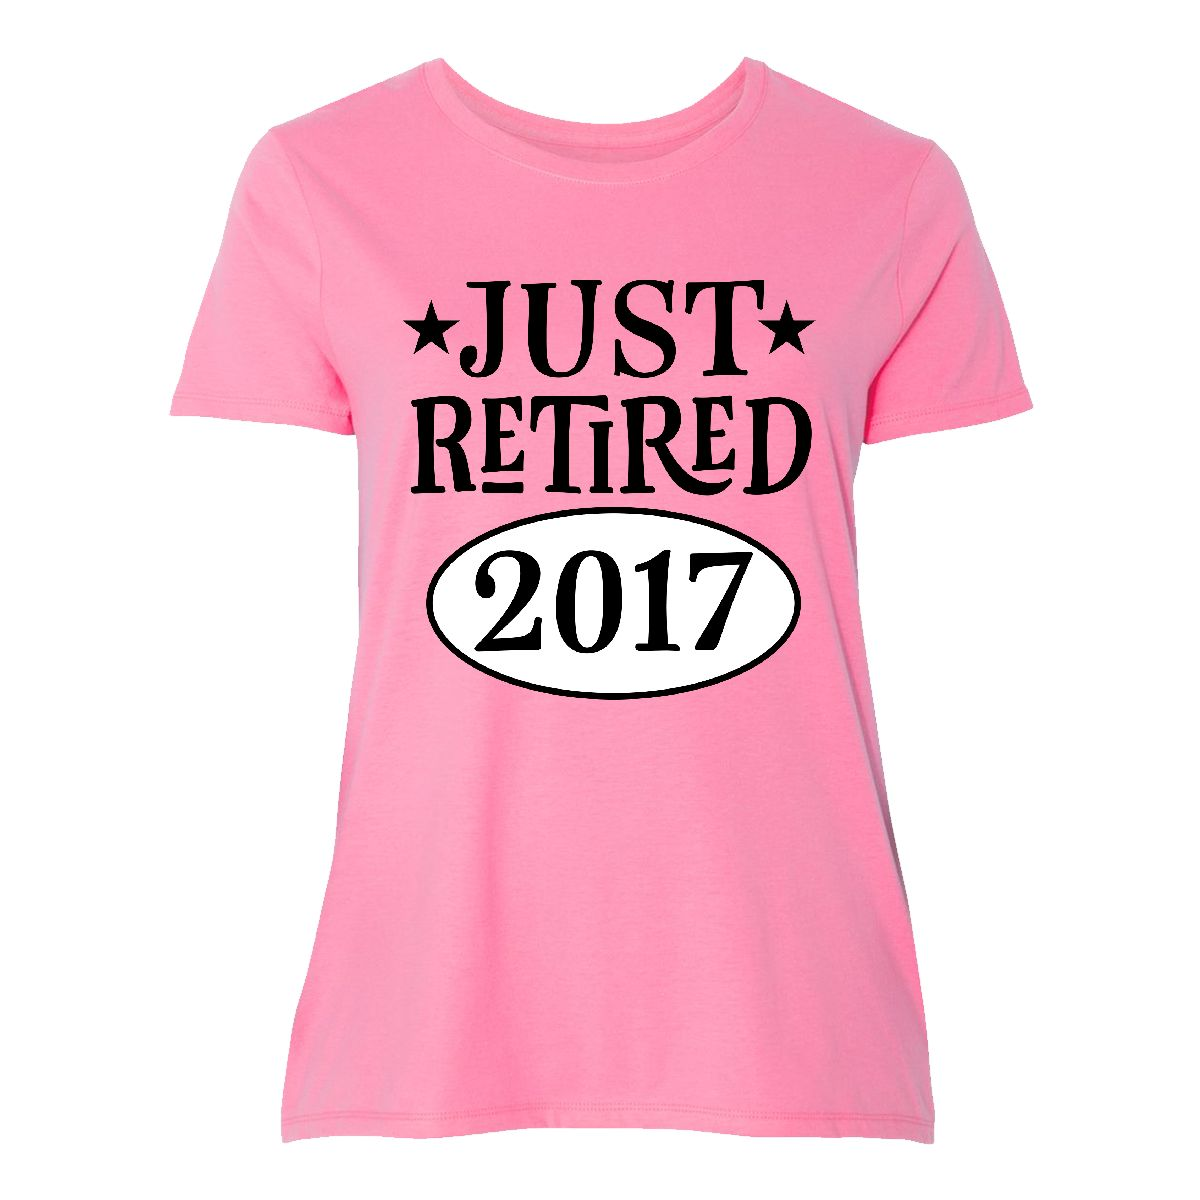 Inktastic Just Retired 2017 Retirement Gift Women's Plus Size T-Shirt Party My